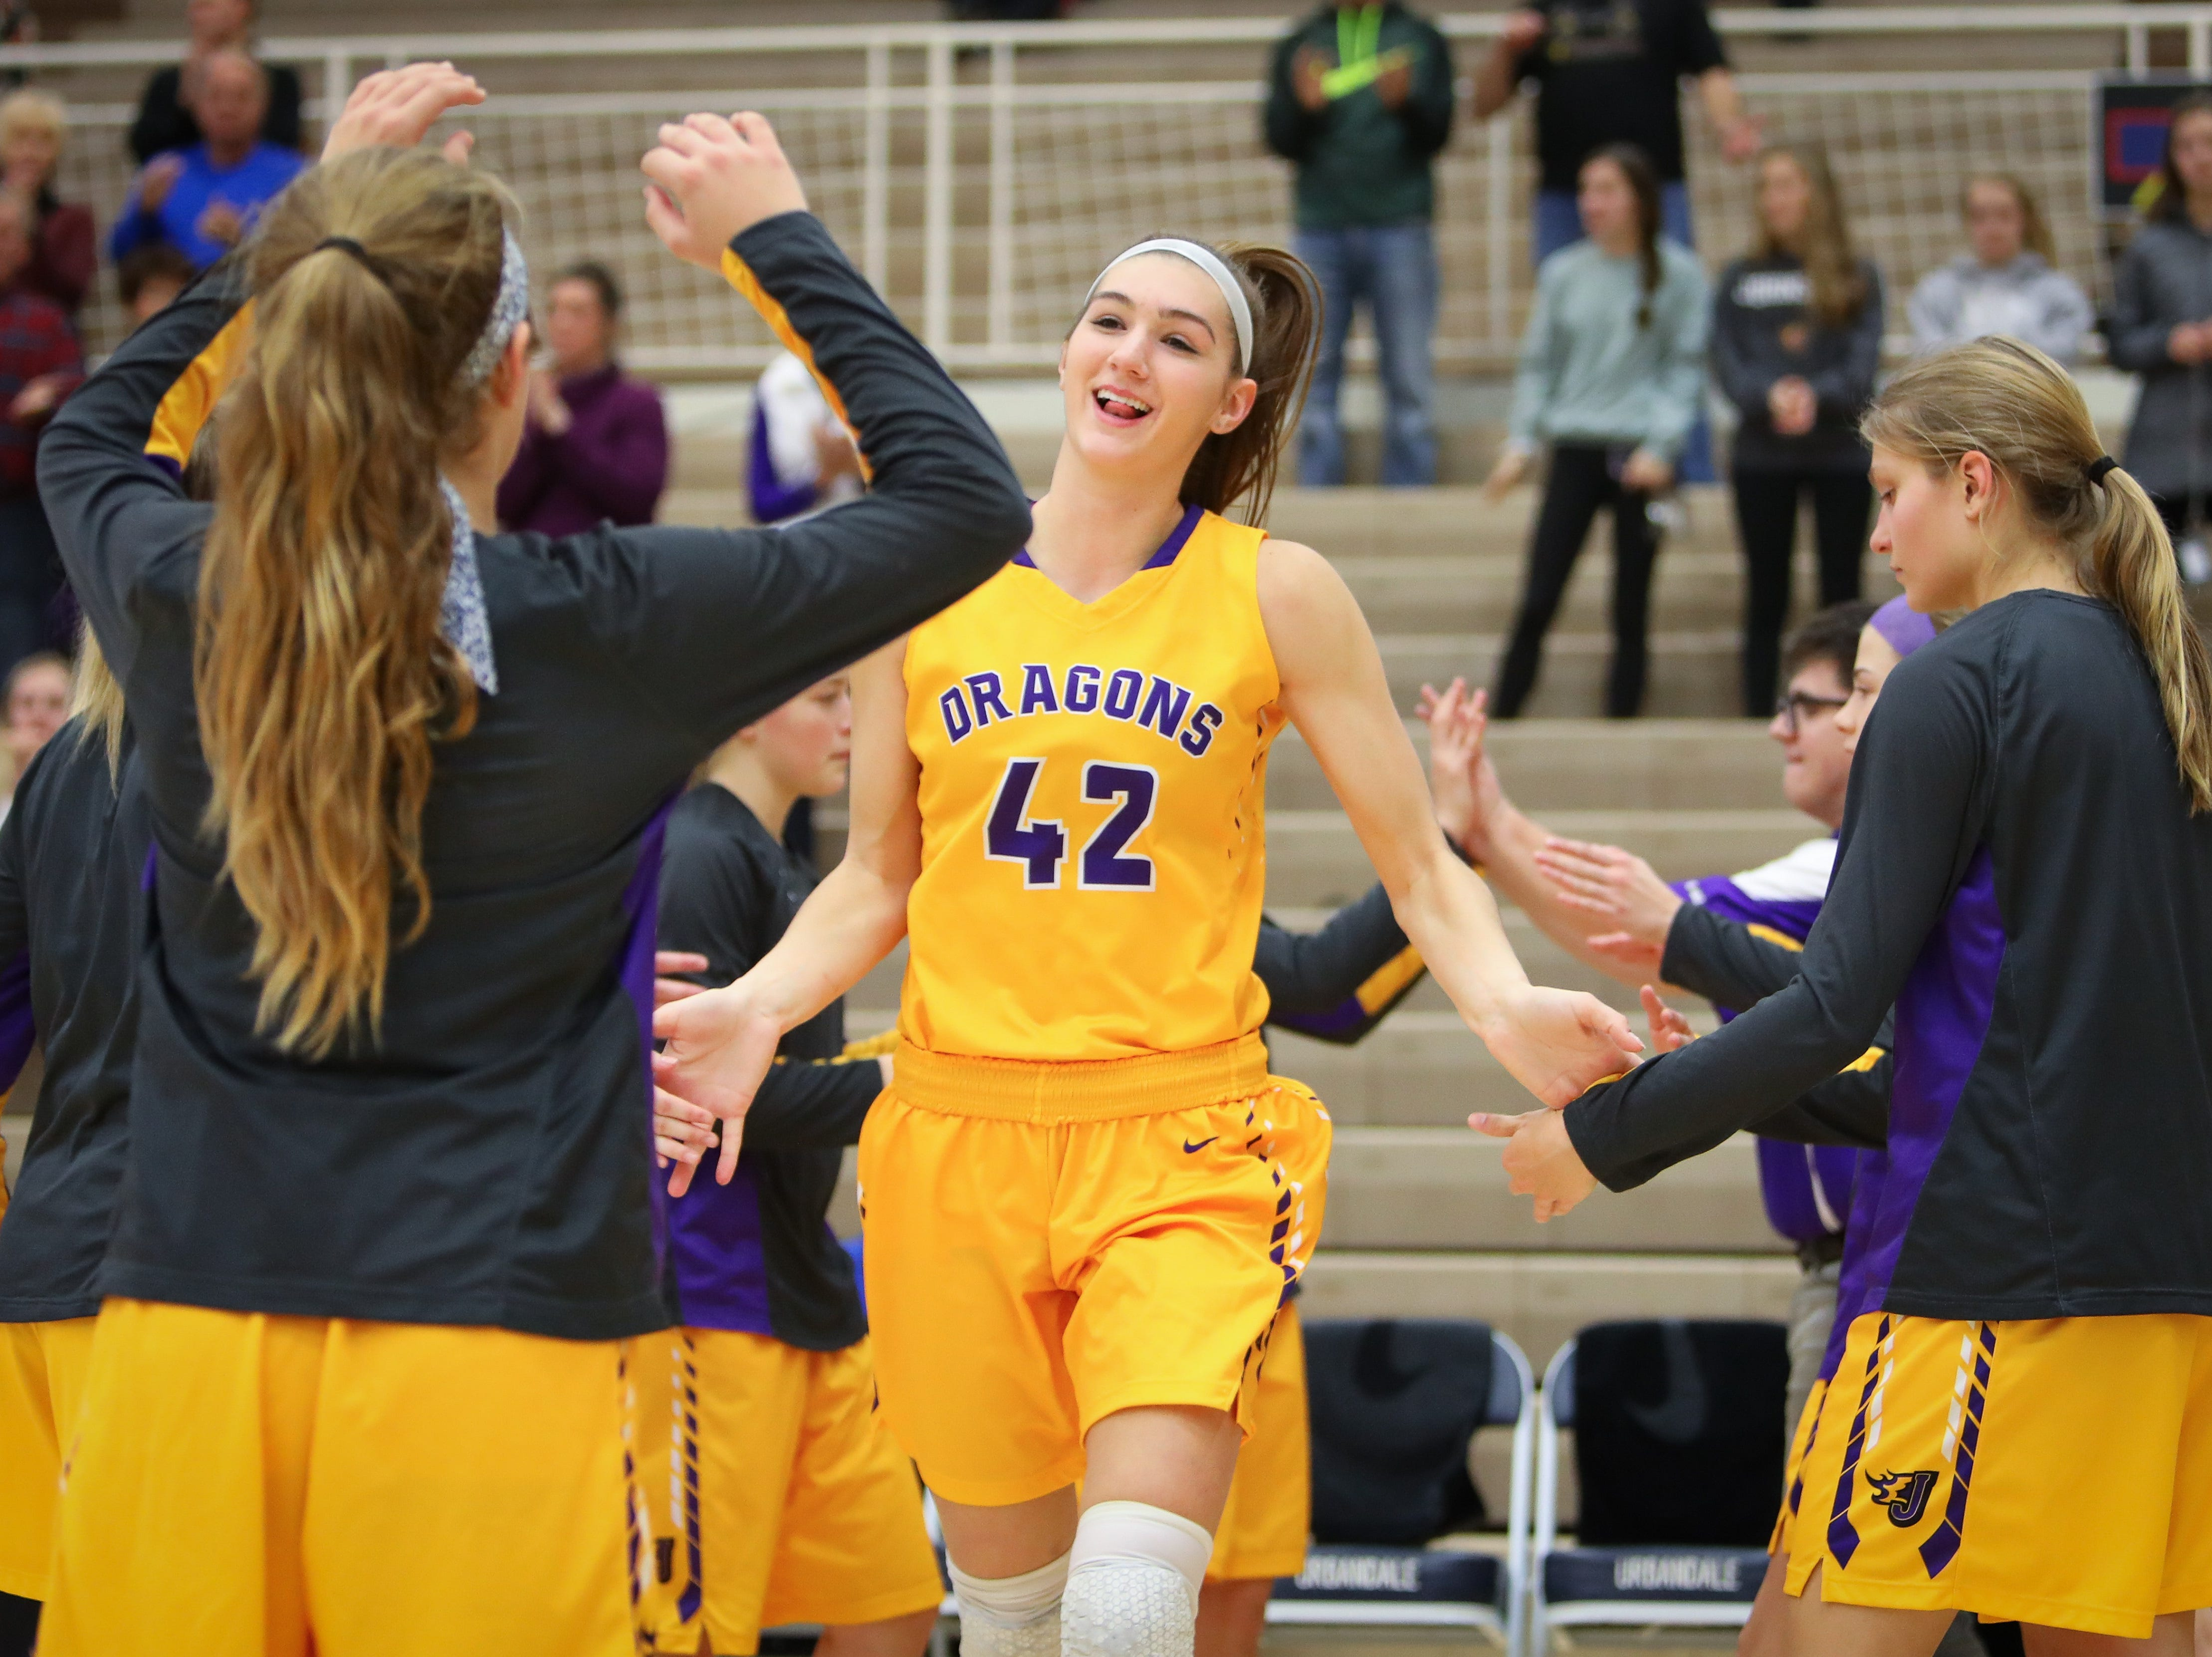 Johnston senior Regan Nesheim smiles as she is introduced before a girls high school basketball game between the Johnston Dragons and the Urbandale J-Hawks at Urbandale High School on Dec. 18, 2018 in Urbandale, Iowa.